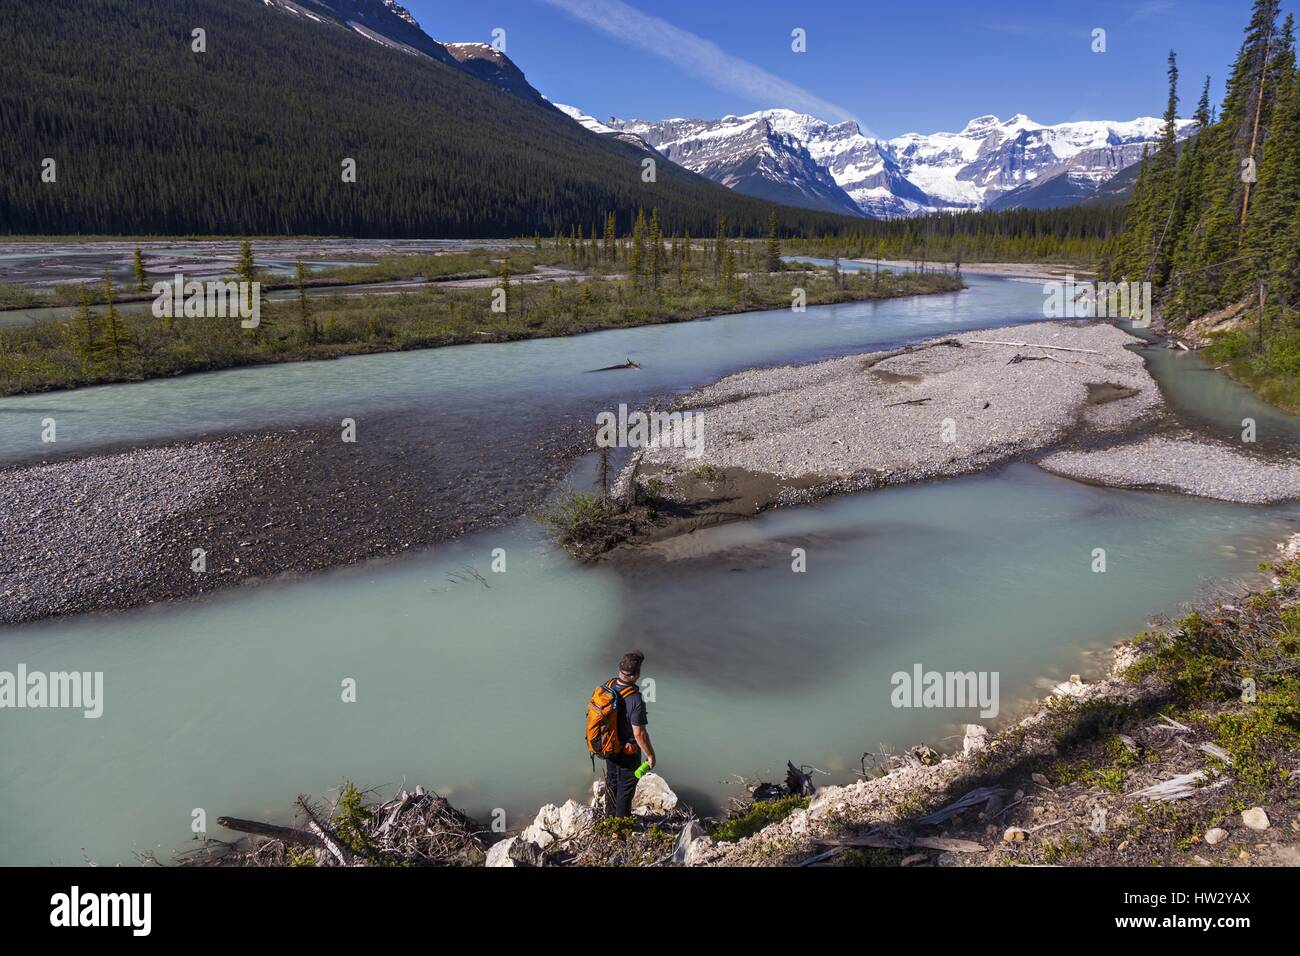 Hiker enjoying views of braided channels of Alexandra River in the heart of Banff National Park in Canadian Rocky - Stock Image